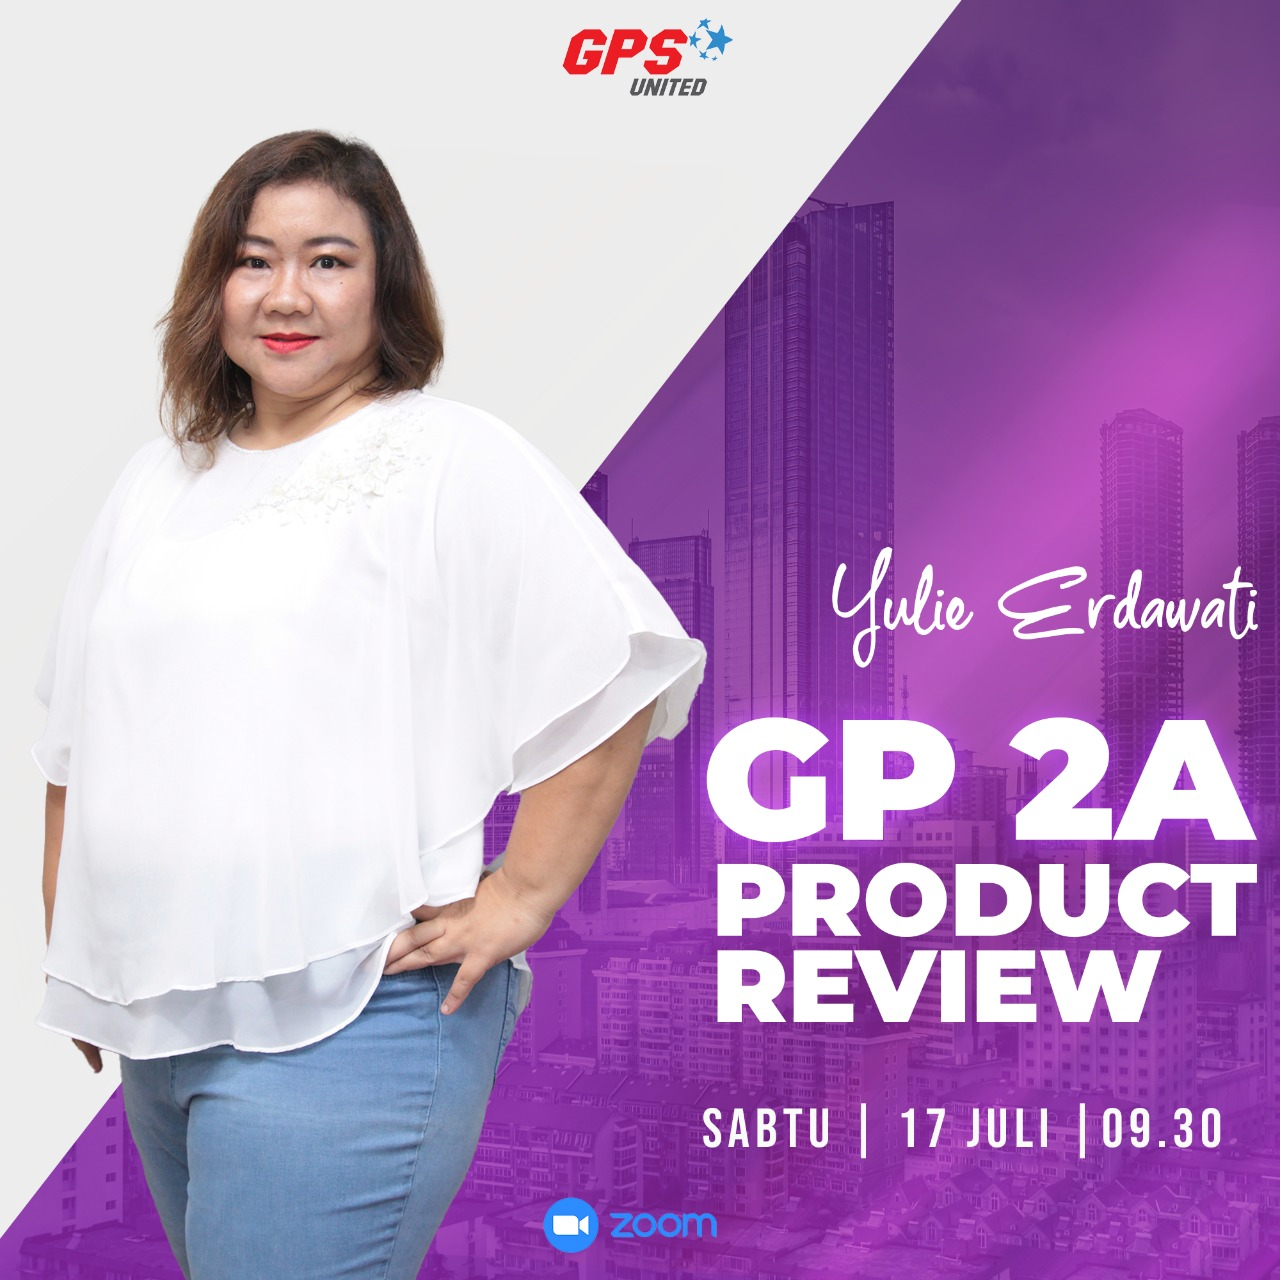 Product Review 2A